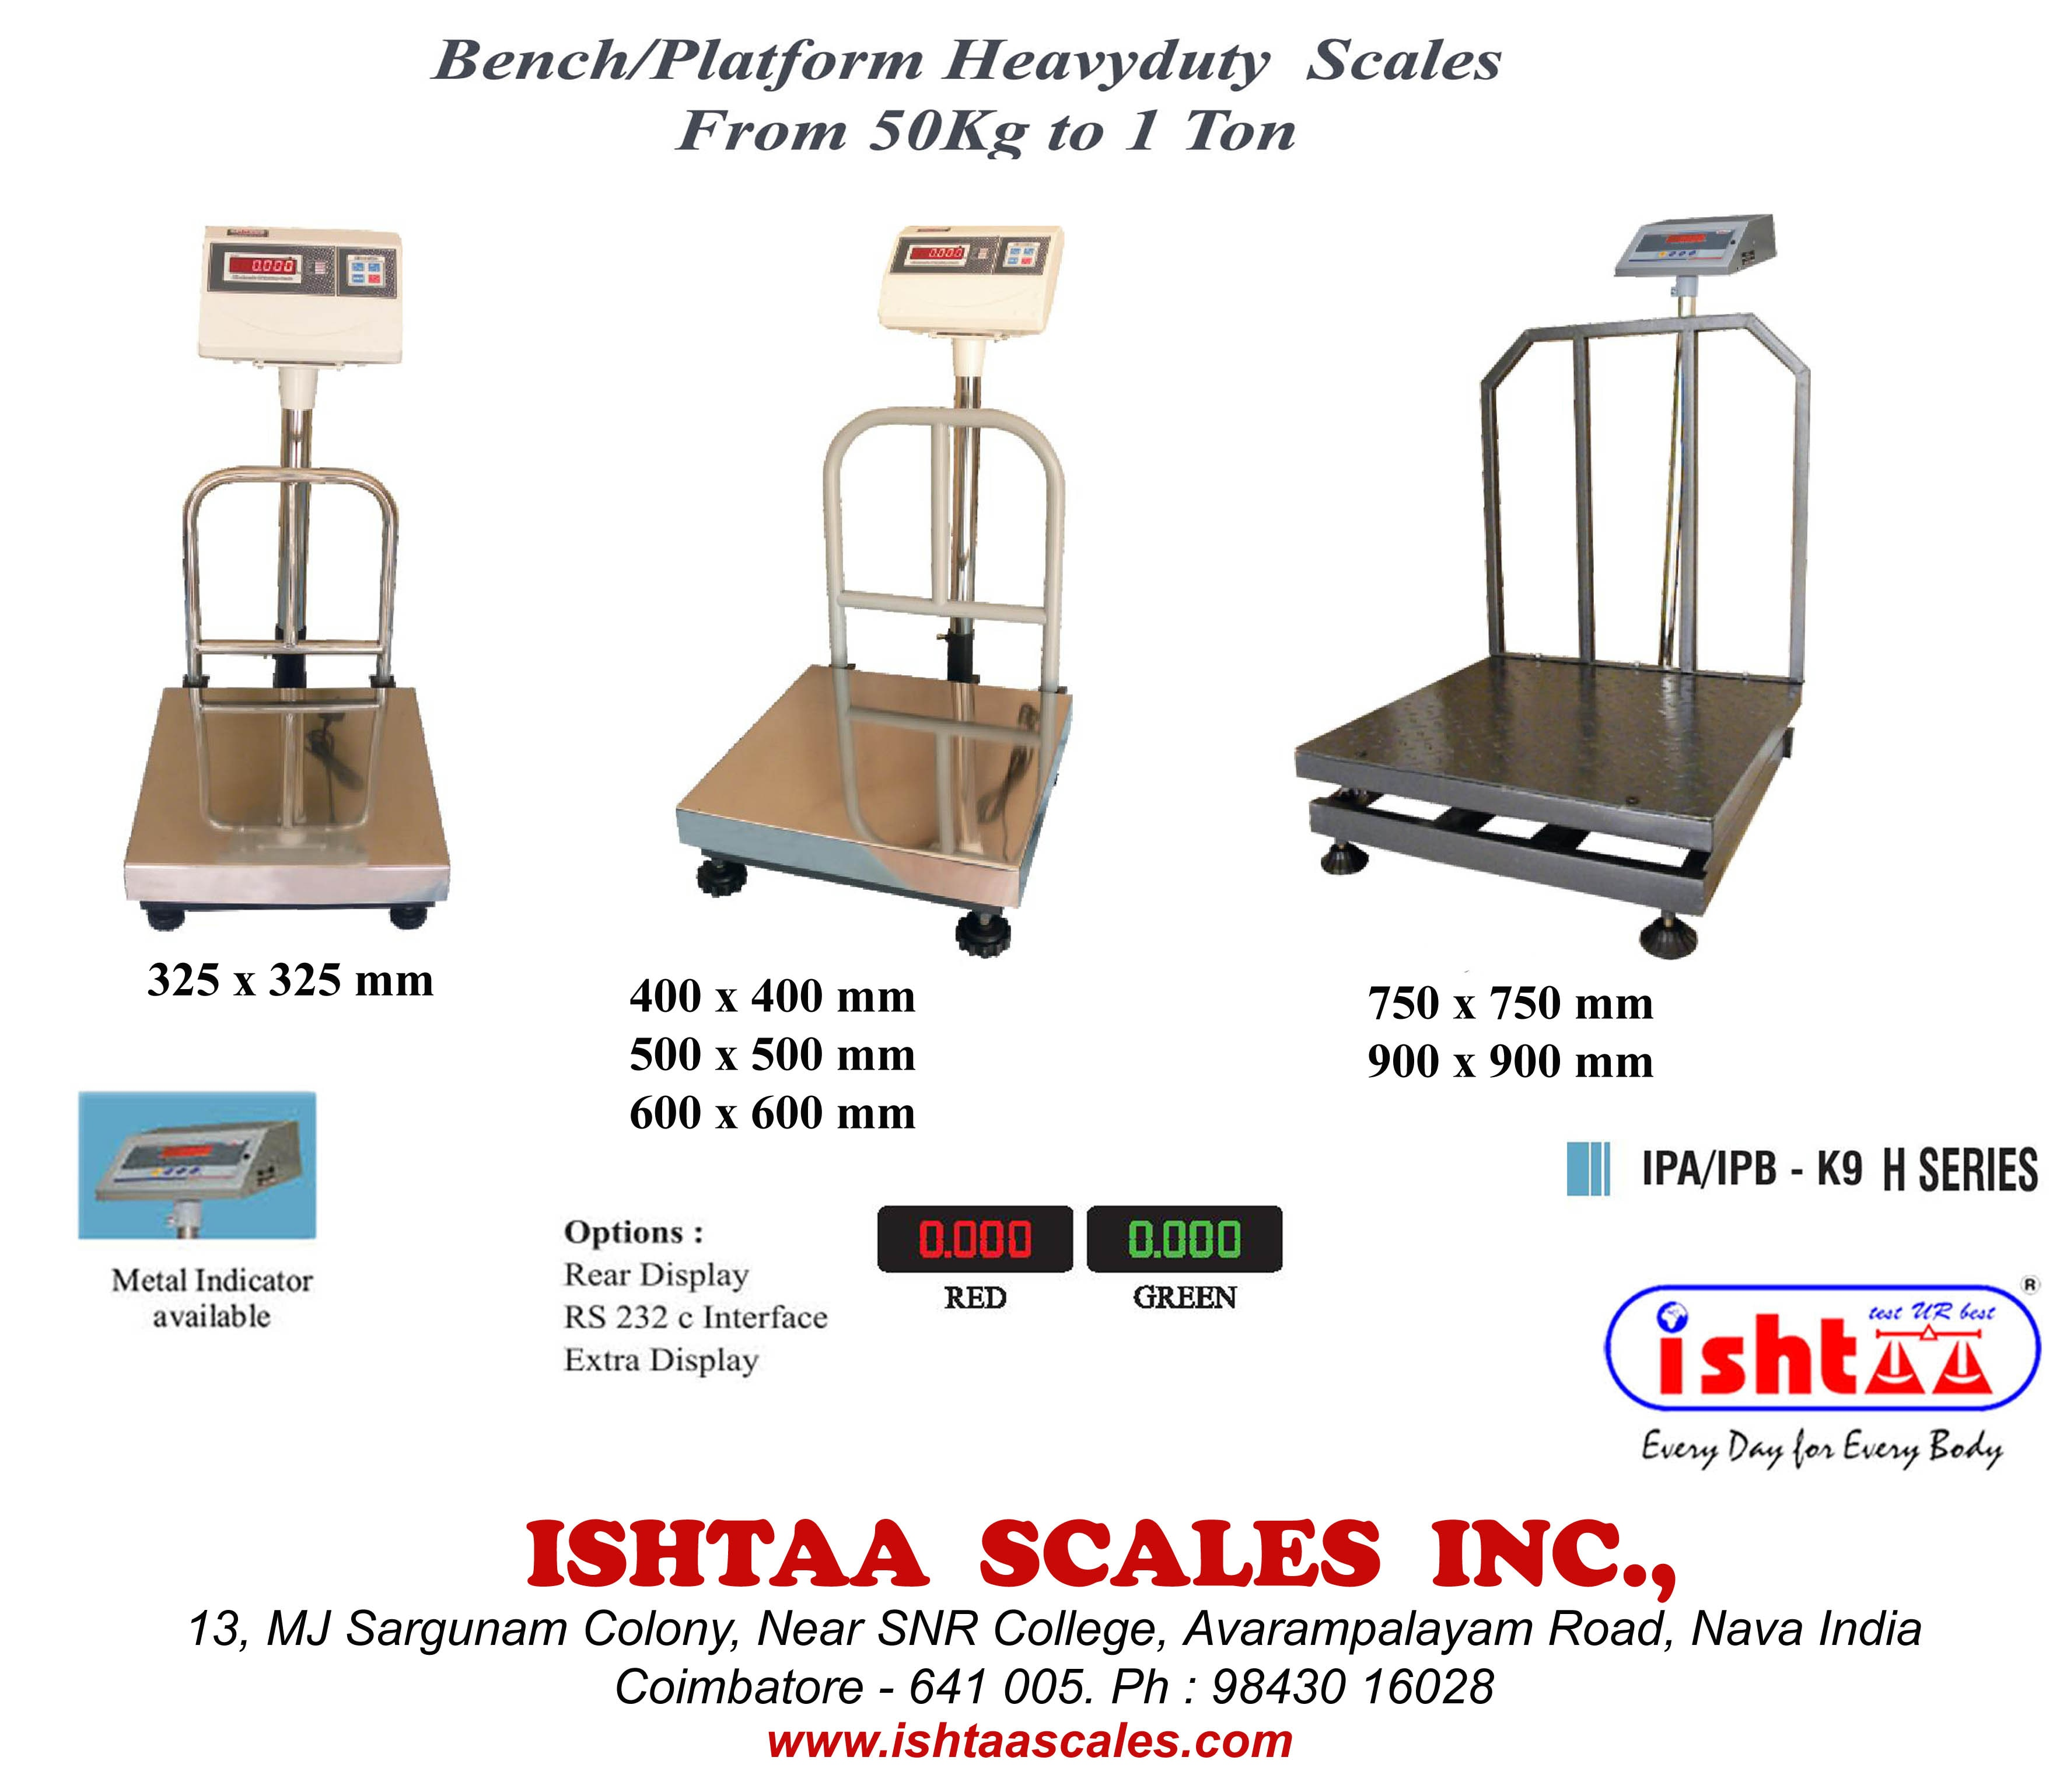 Ishtaa Scales Inc.,  is the leading Weighing Scale  manufacturer in  Coimbatore. Proudly PRESENTS Ishtaa - IPA/IPB K9 H Series  Available in MS / SS The Power Packed Platform Scales Highly Rigid.. 100% Efficiency..  Recommended Heavy weight Scale  for all  types of  Heavy Duty Applications Industrial weighing Platform weighing Parcel weighing Scrap Weighing Meats & Cheese weighing Fruits & vegetable weighing Hotels Cargo Weighing Heavy duty Weighing Harbor  weighing Heavy duty digital Weighing Scales with Special Features &   Desired Specifications are AVAILABLE here. Buy MORE.. Earn MORE...  CALL: 09843016028 , 0422- 4516575 Mail: online@ishtaascales.com Web: www.ishtaascales.com